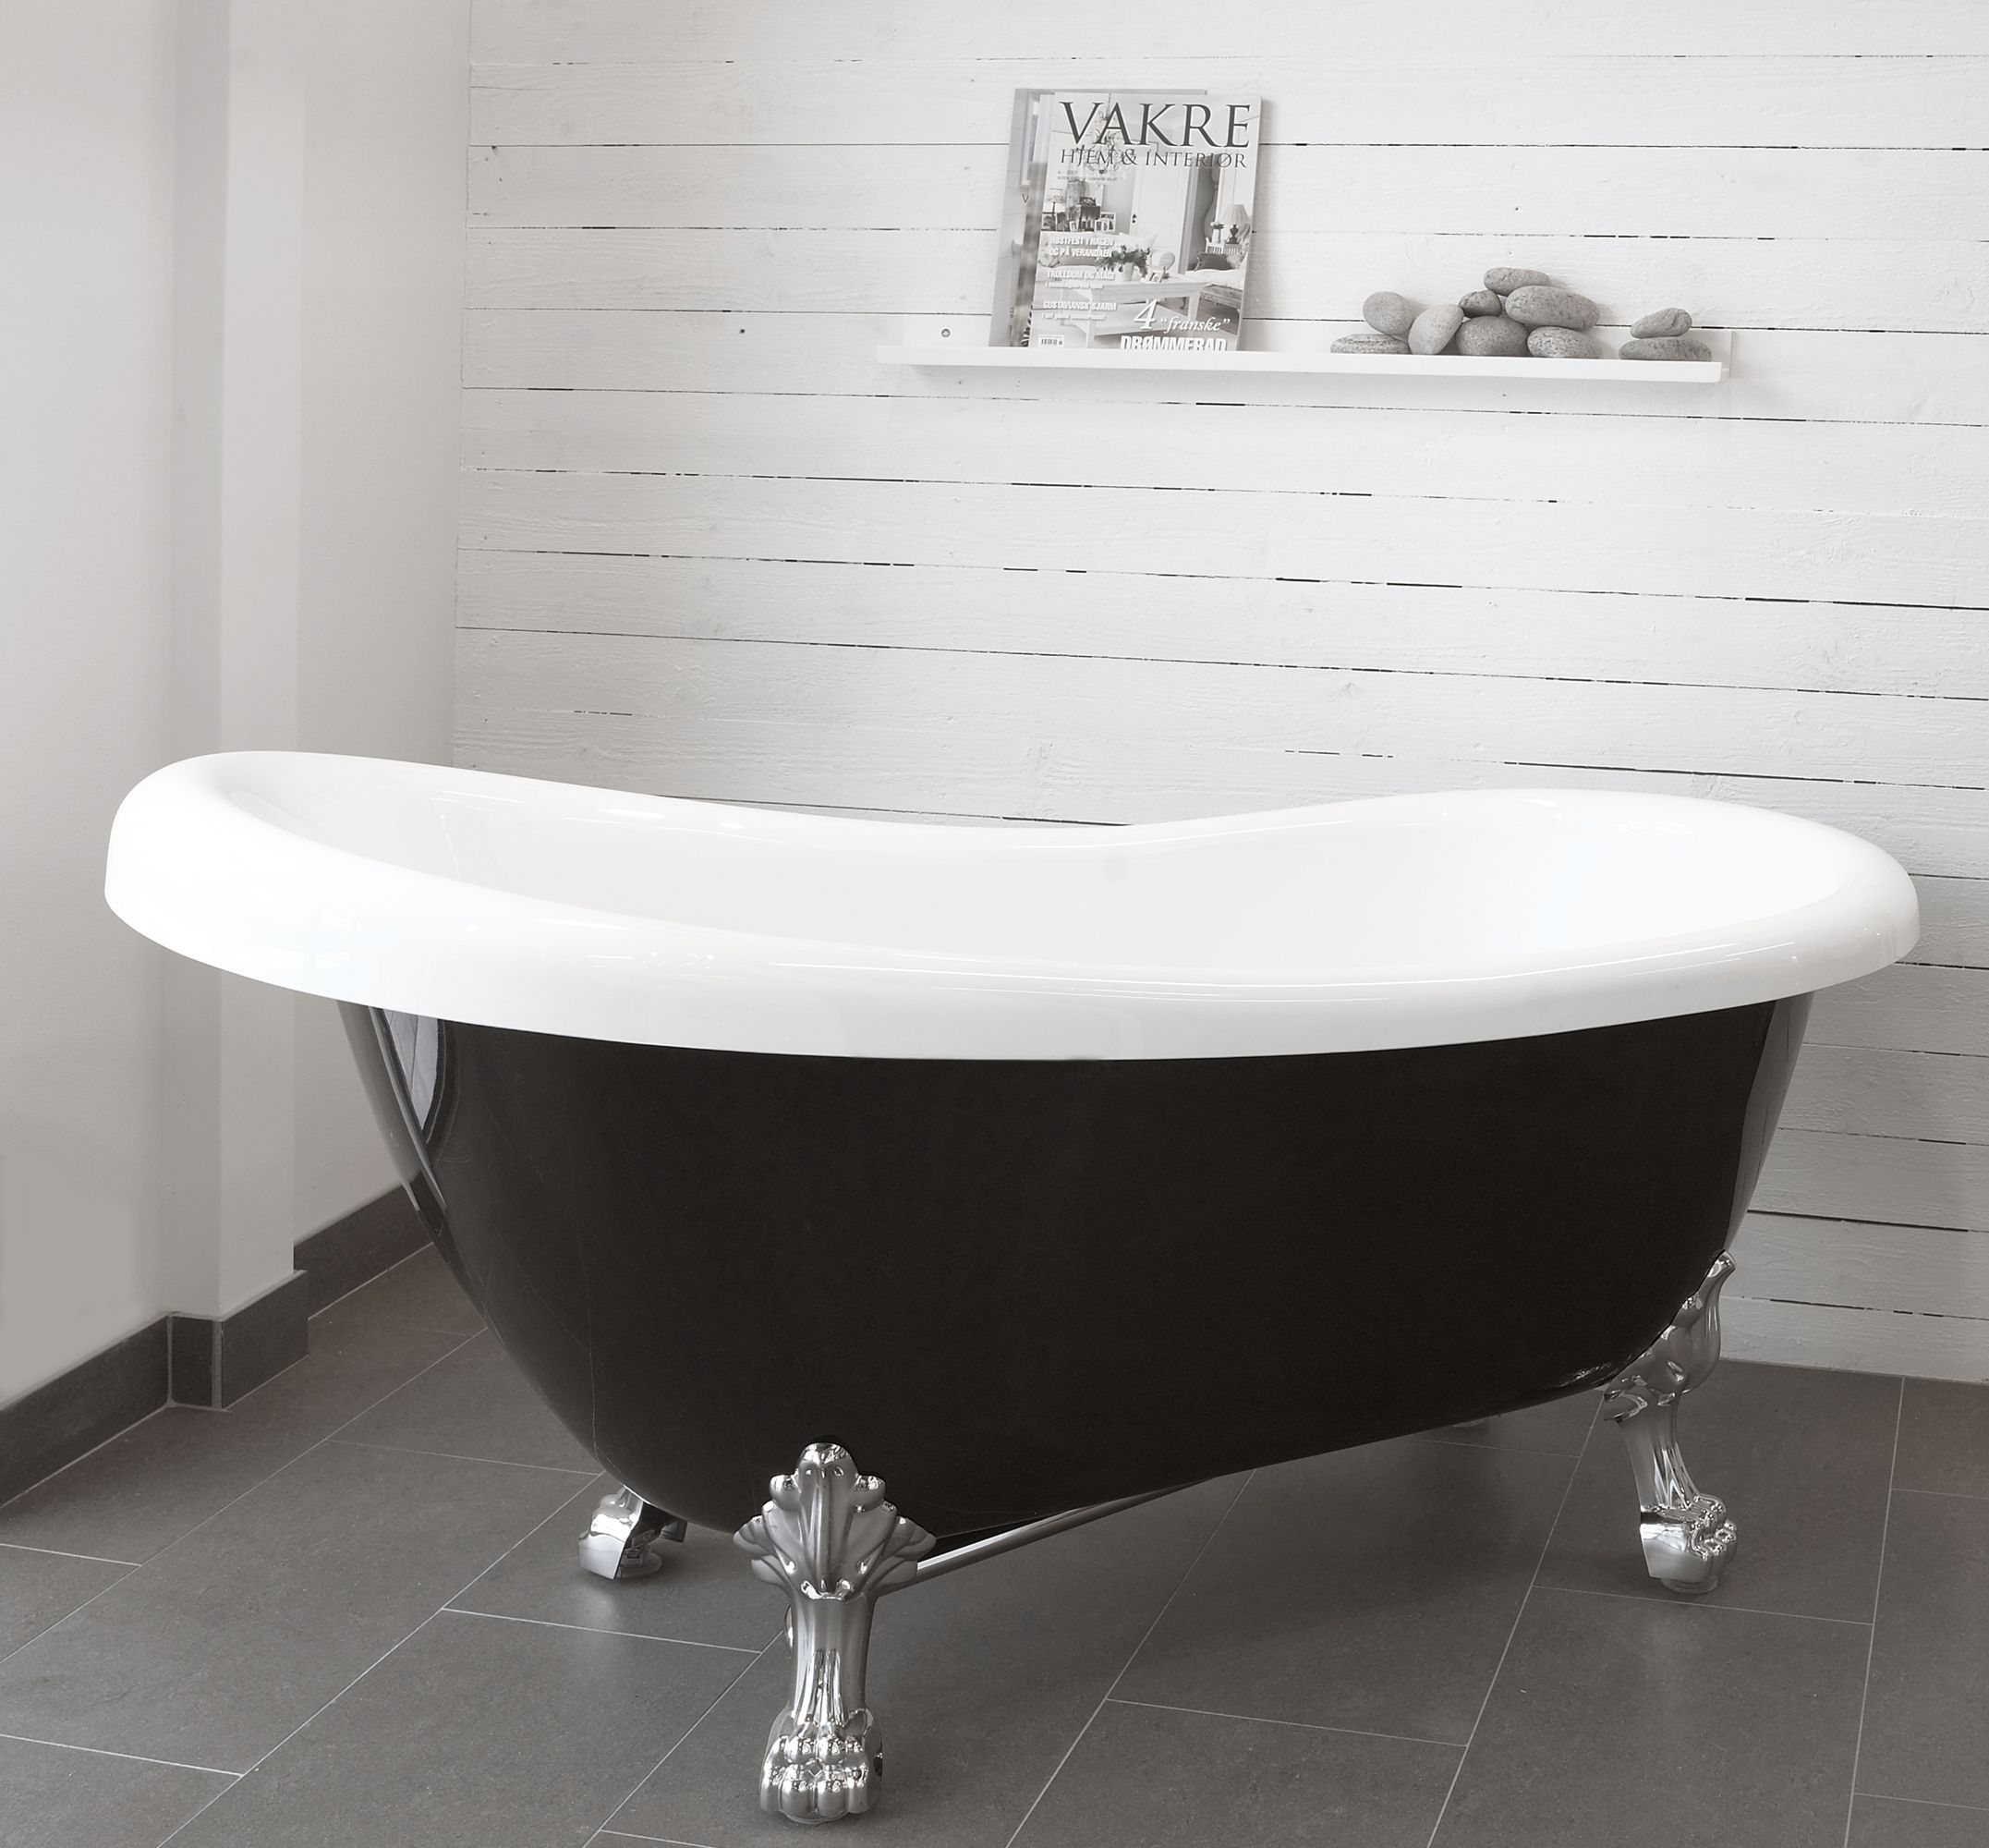 1000+ images about Badrum - bathroom inspiration on Pinterest ...